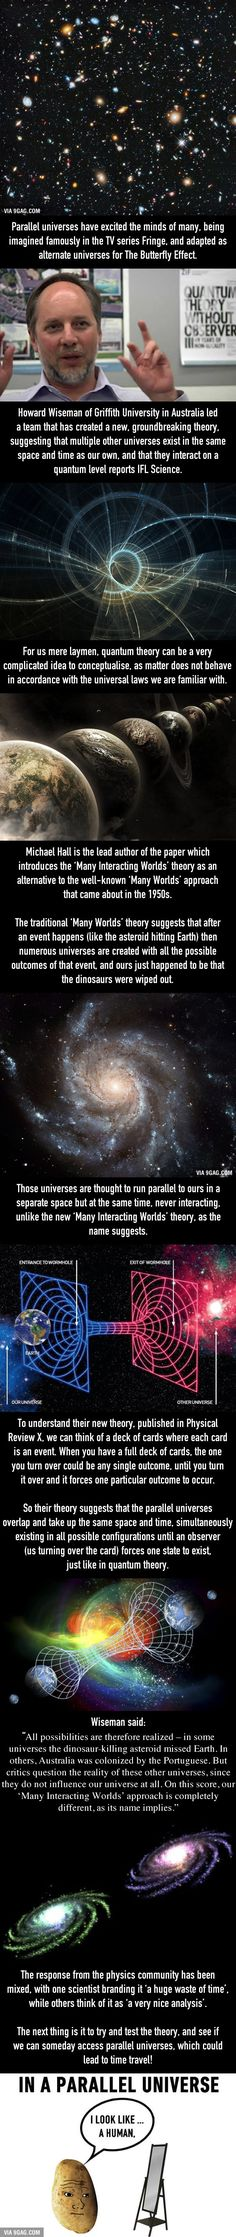 Scientists Confirm Parallel Universes Really Exist